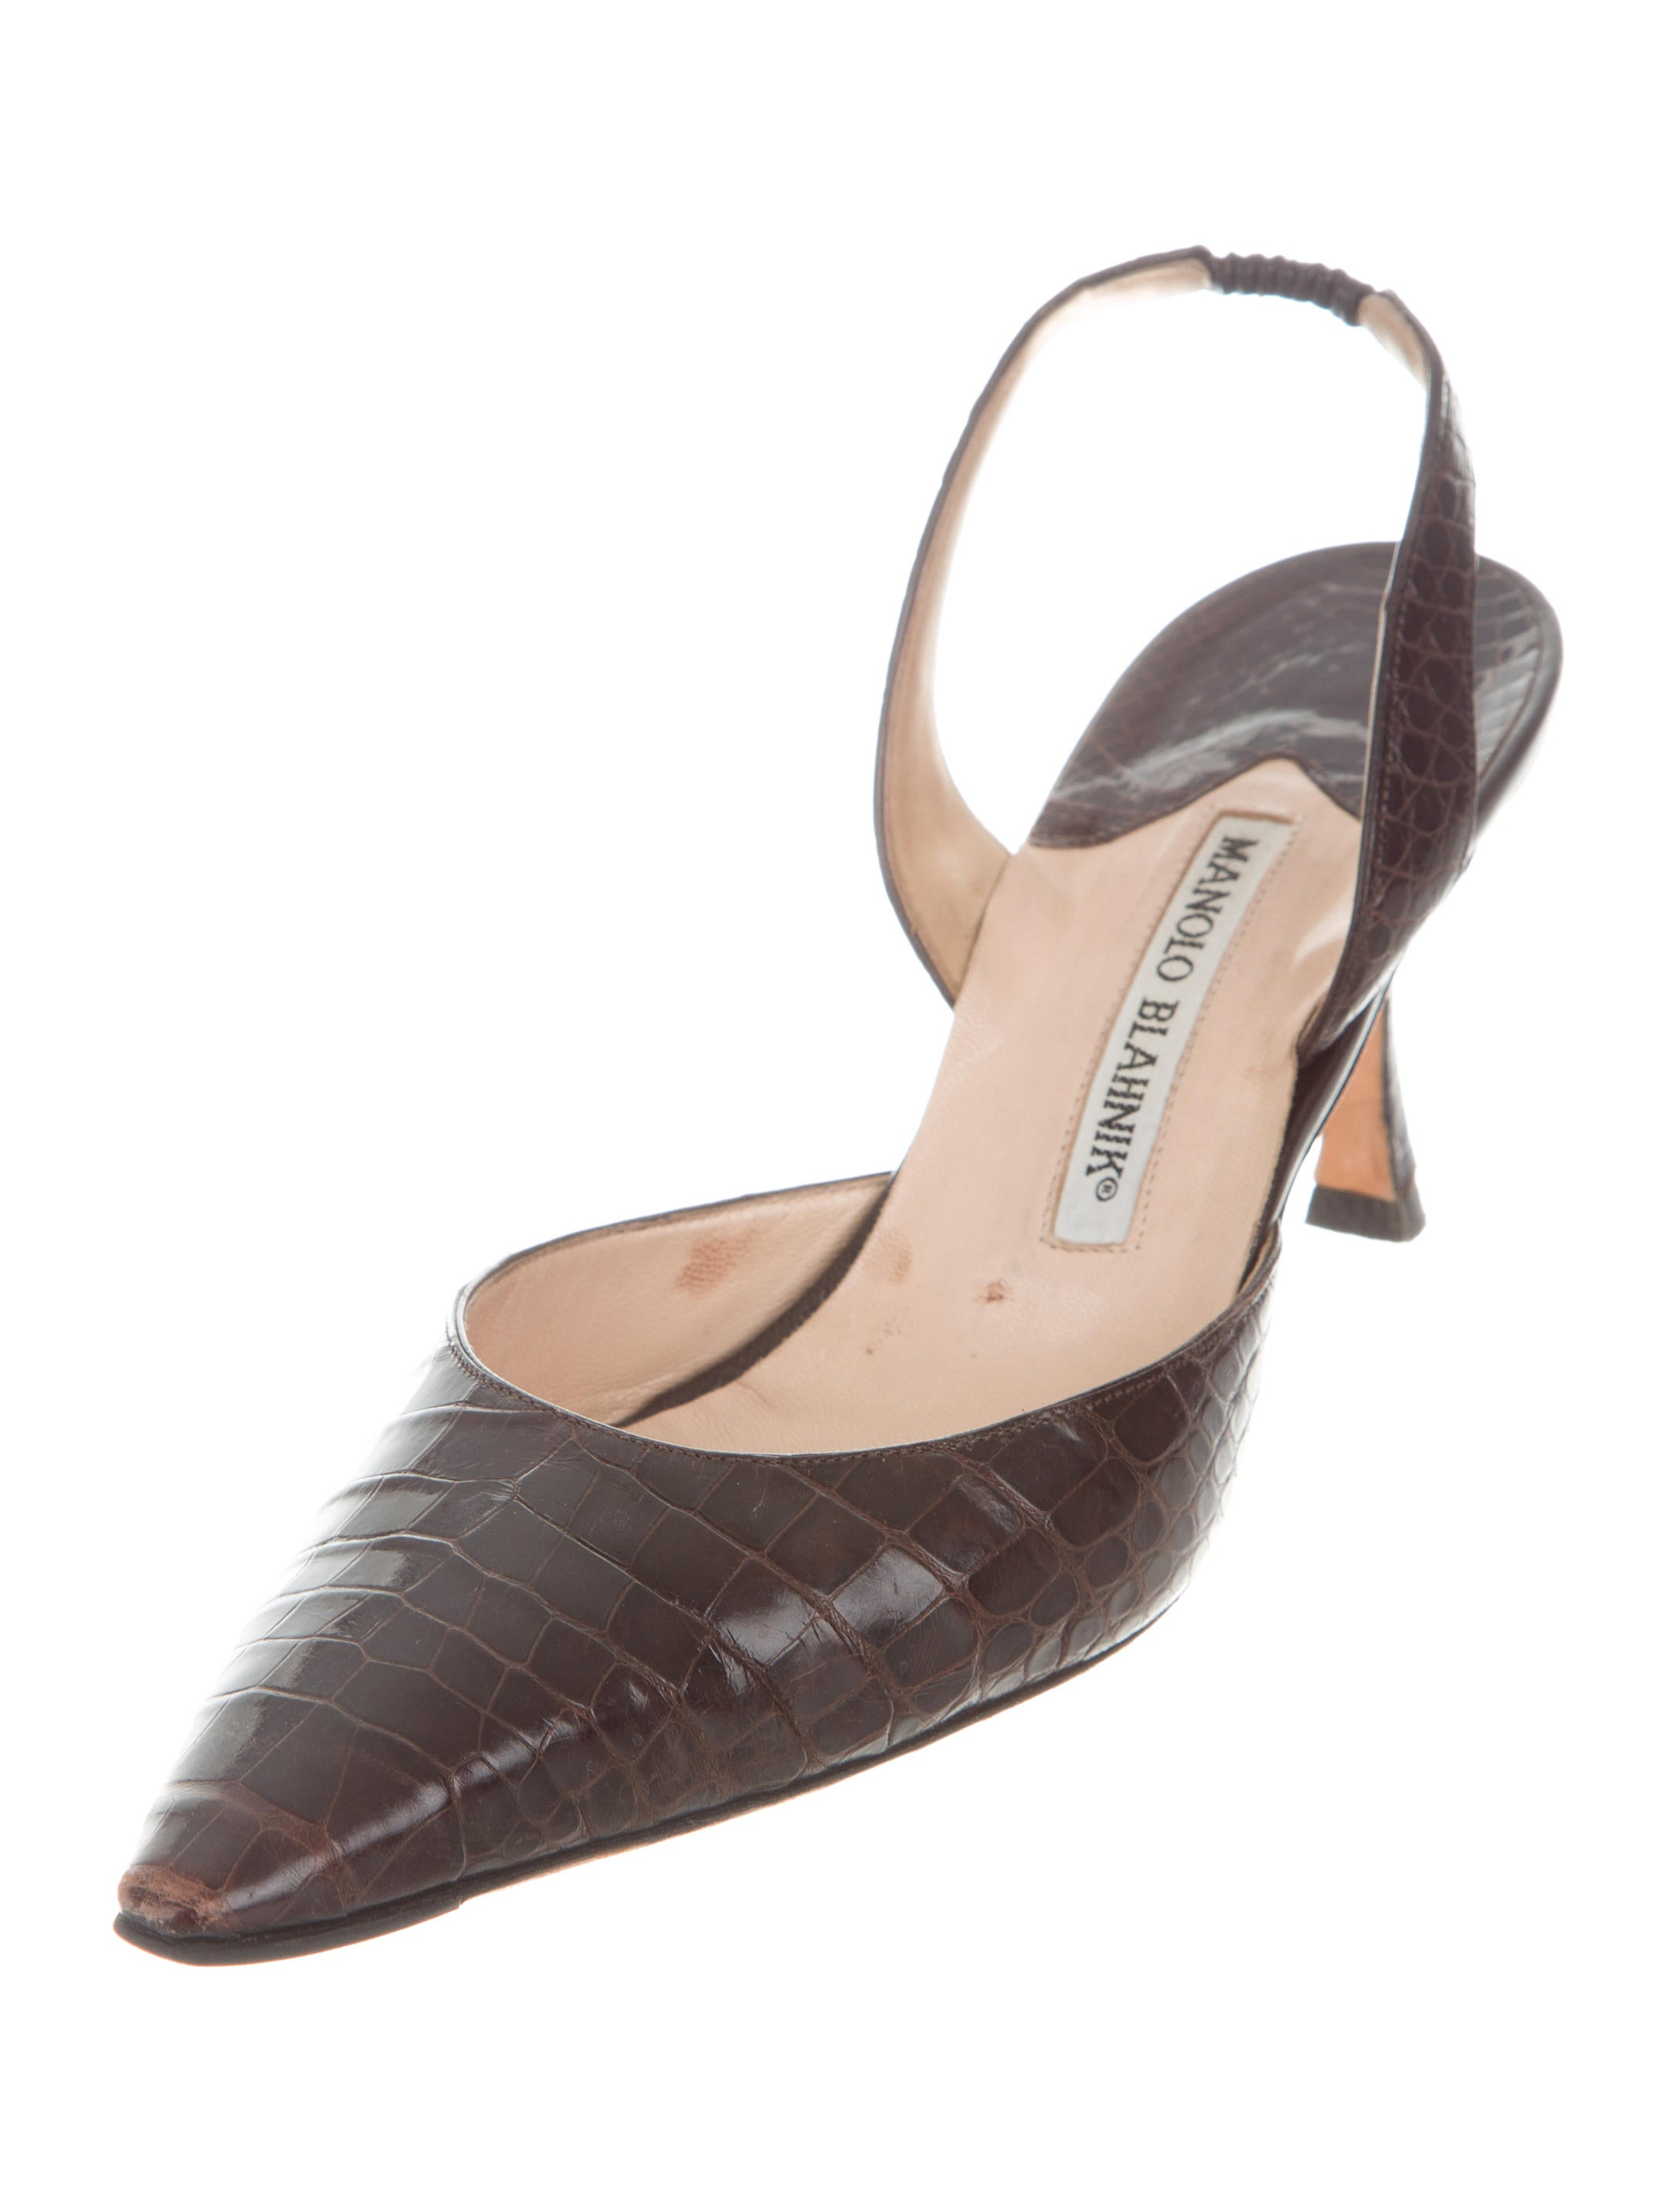 Manolo blahnik alligator carolyne pumps shoes moo71292 for Shoes by manolo blahnik